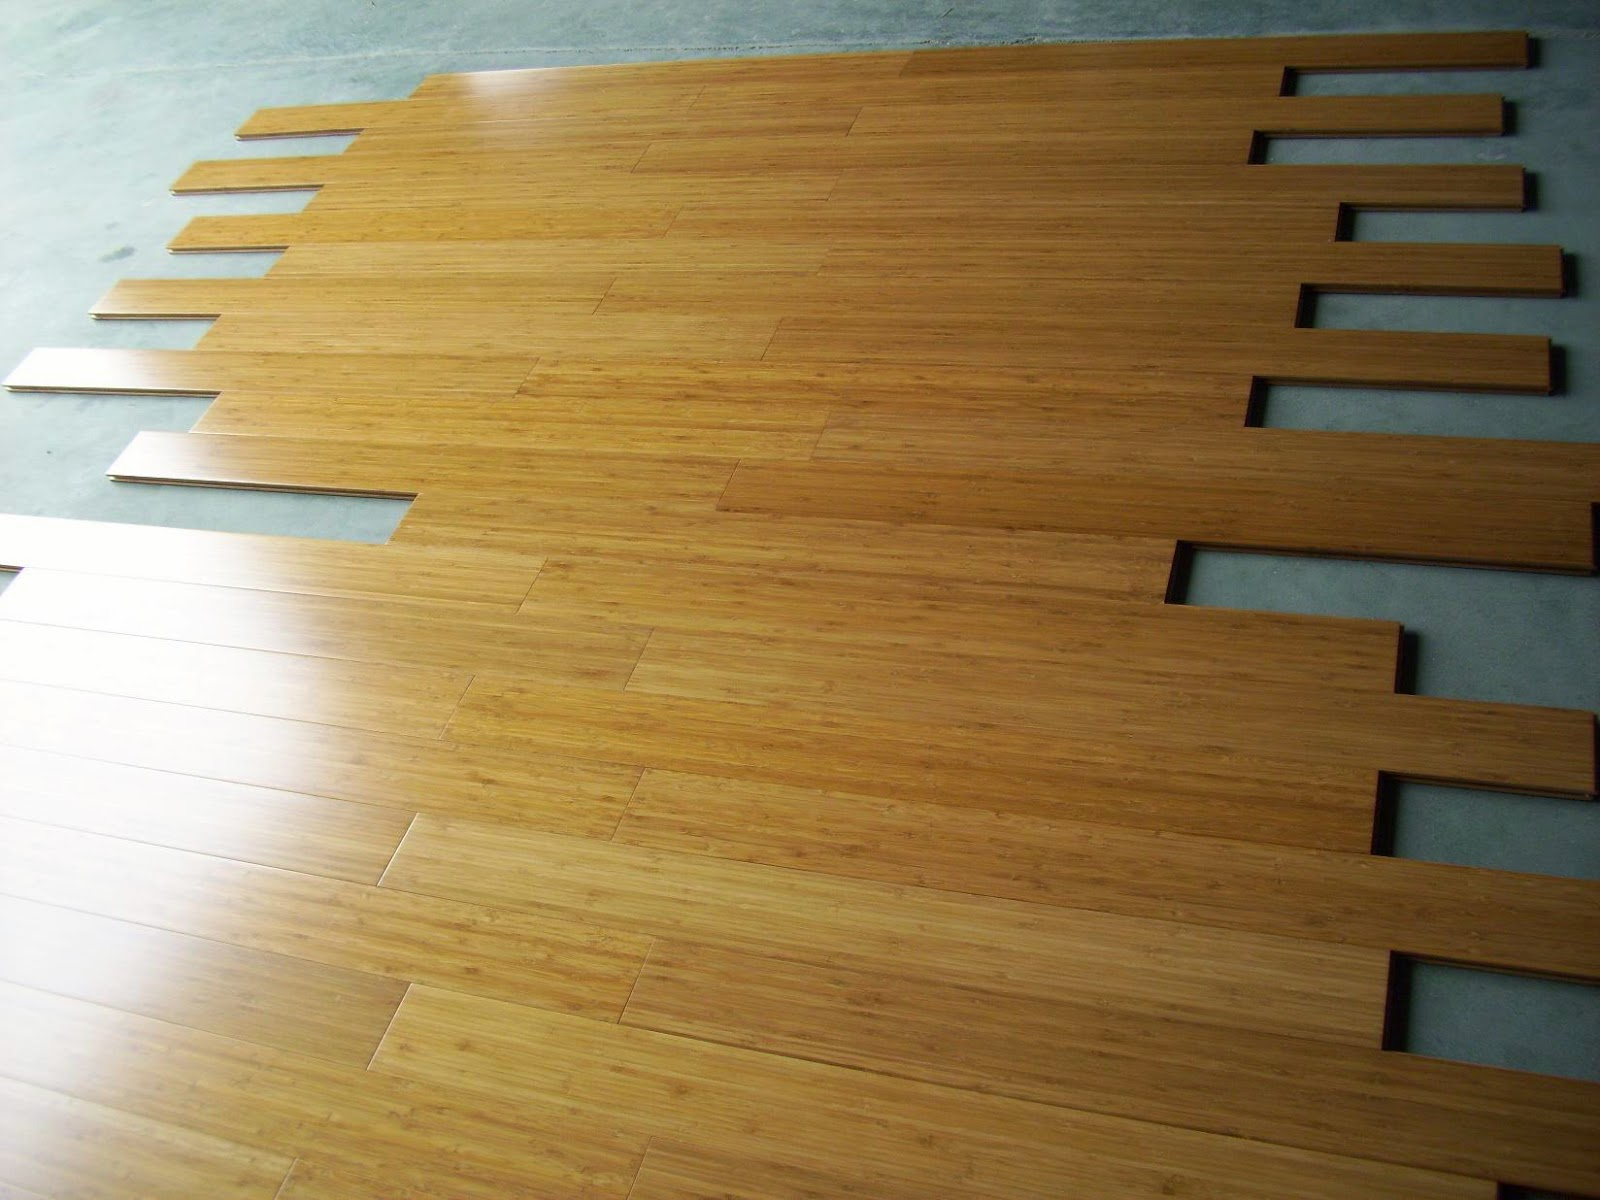 Difference between cork flooring and bamboo flooring for Cork vs bamboo flooring